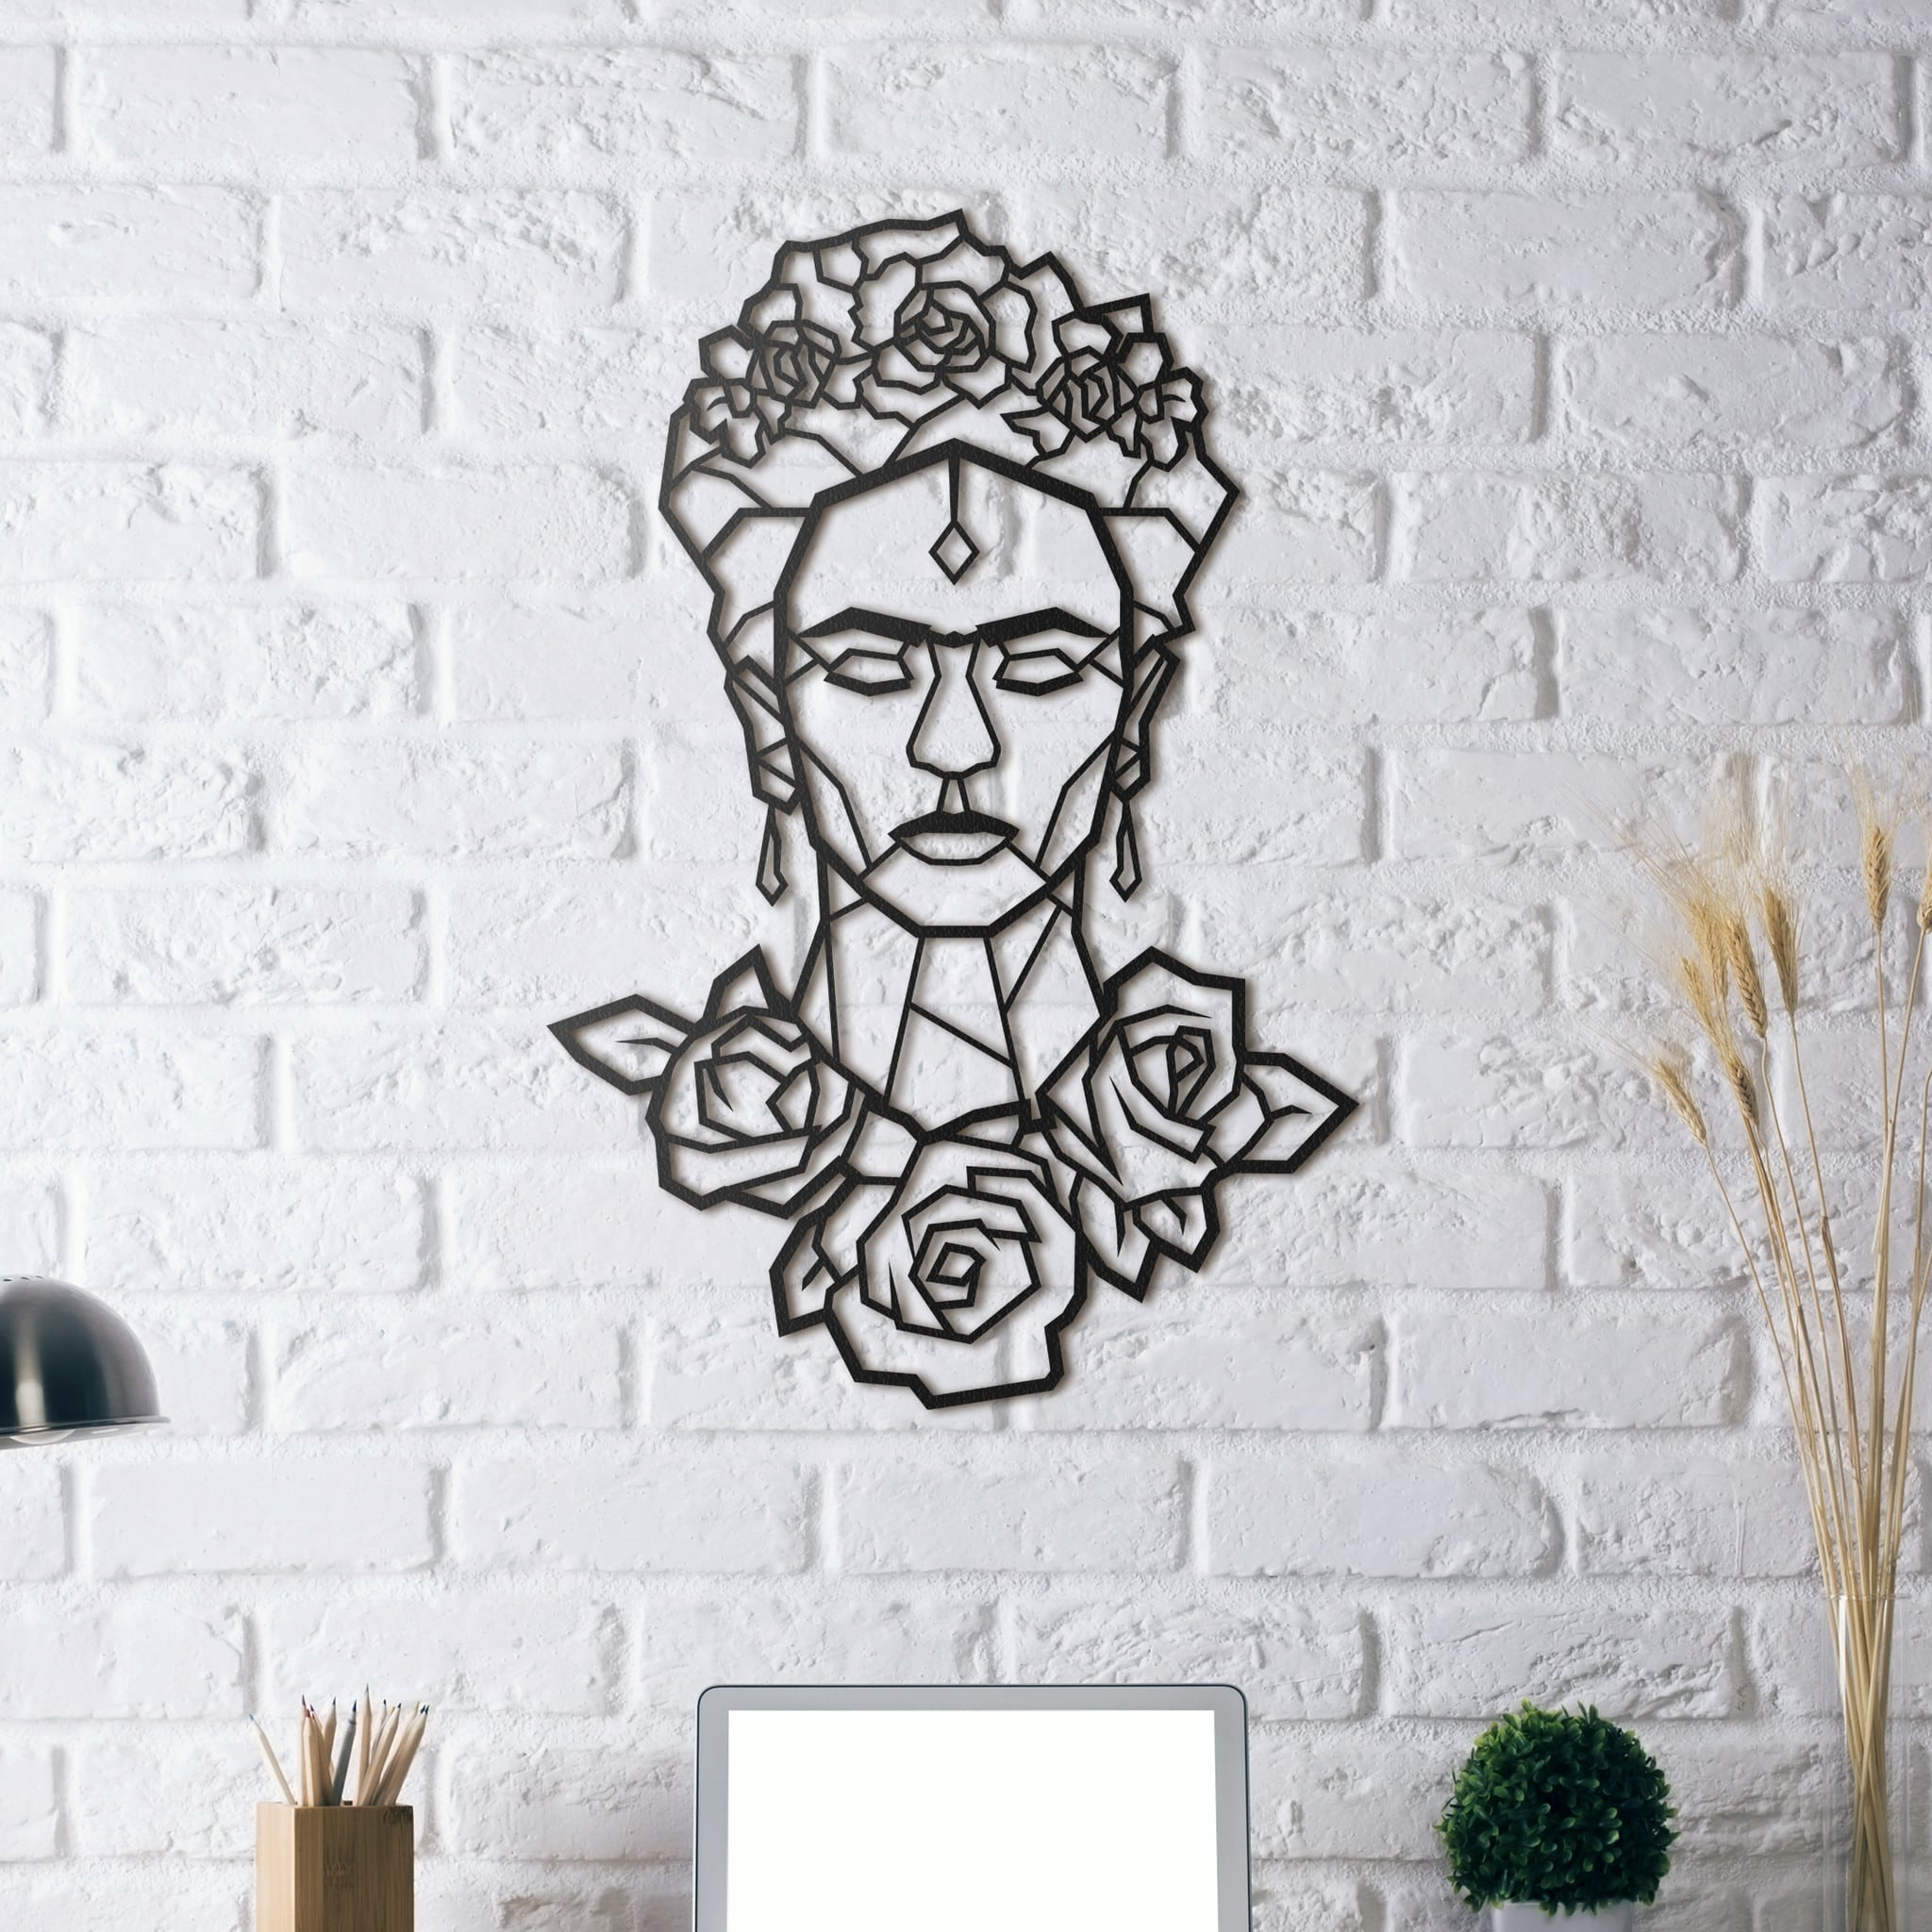 Design metal wall decoration of the artist Frida Kahlo for modern interior